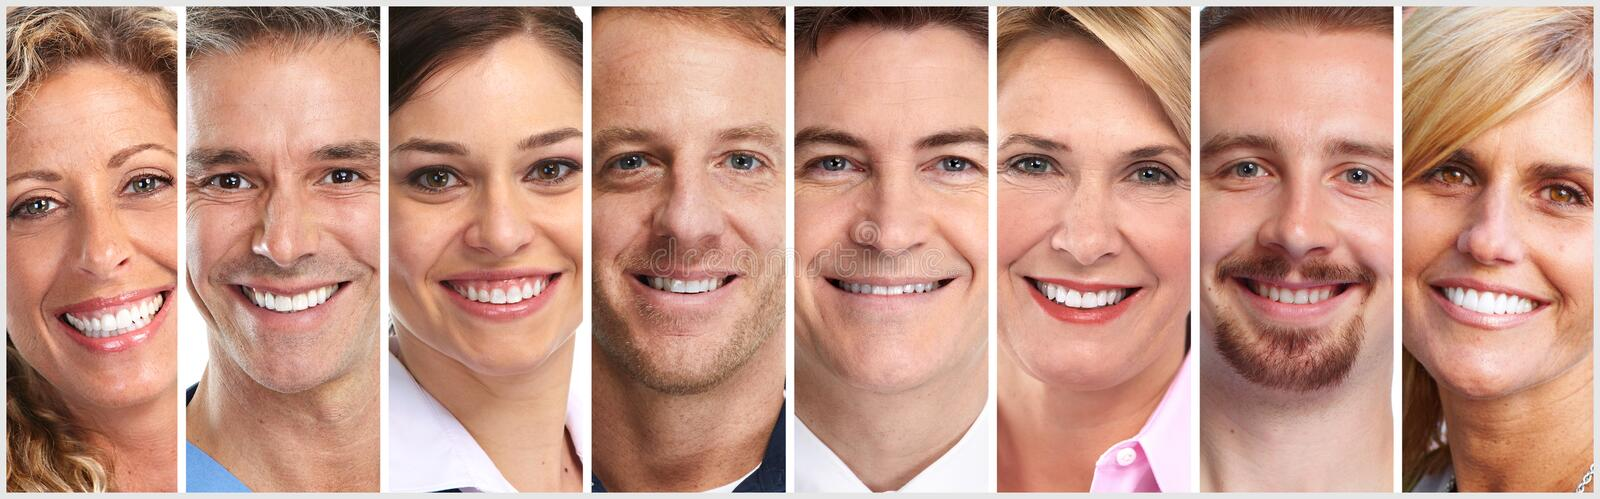 Happy people faces set royalty free stock image